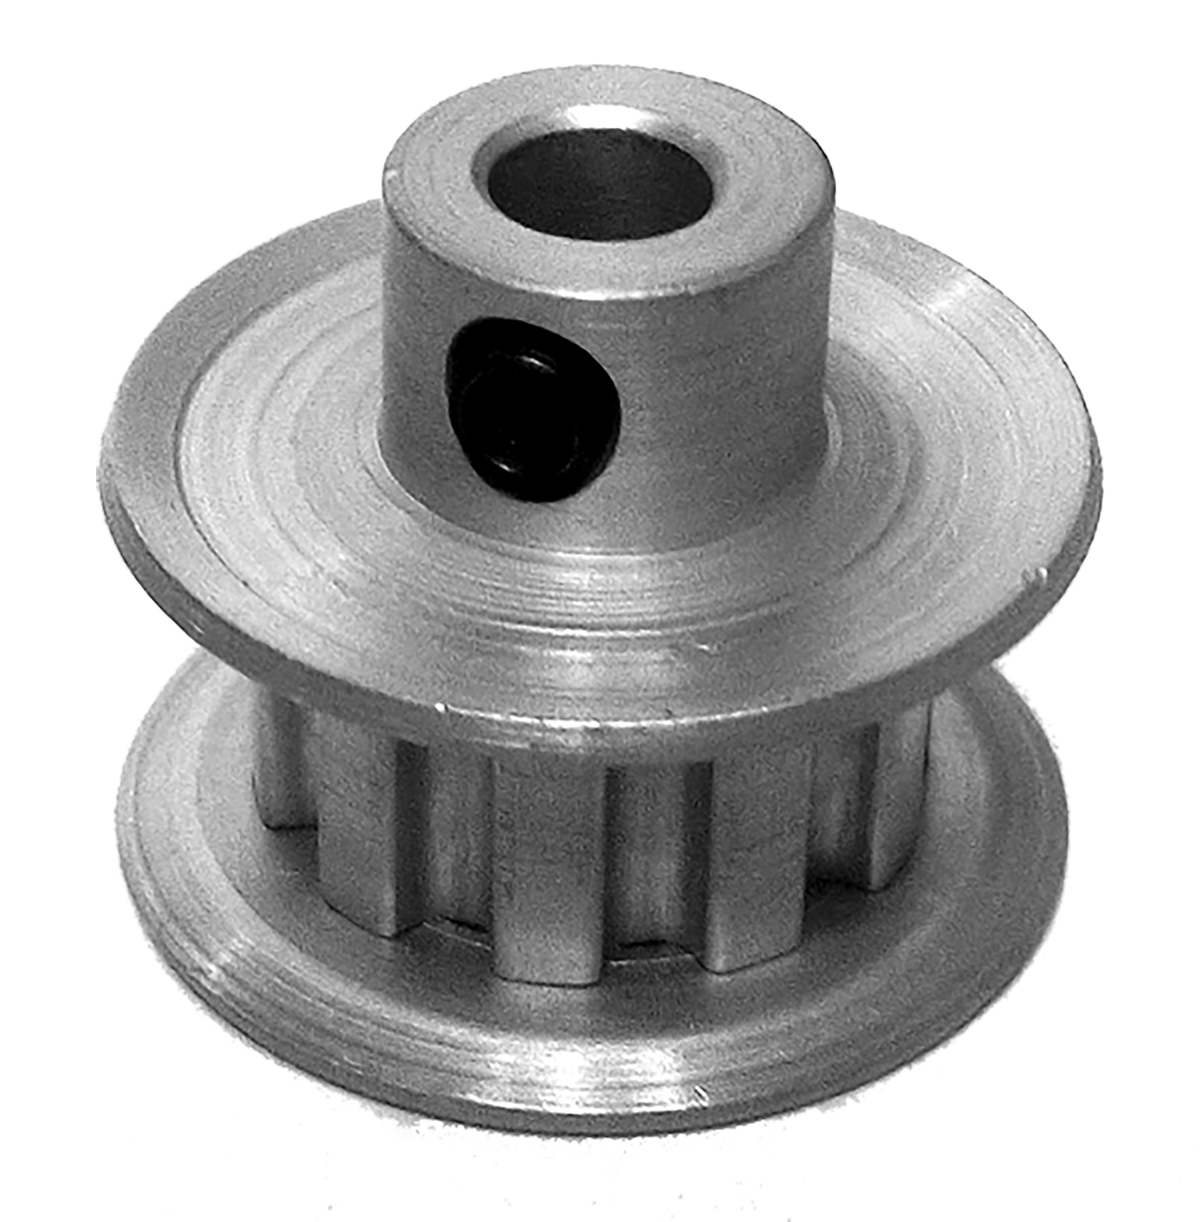 10XL025M6FA6 - Aluminum Metric Pulleys